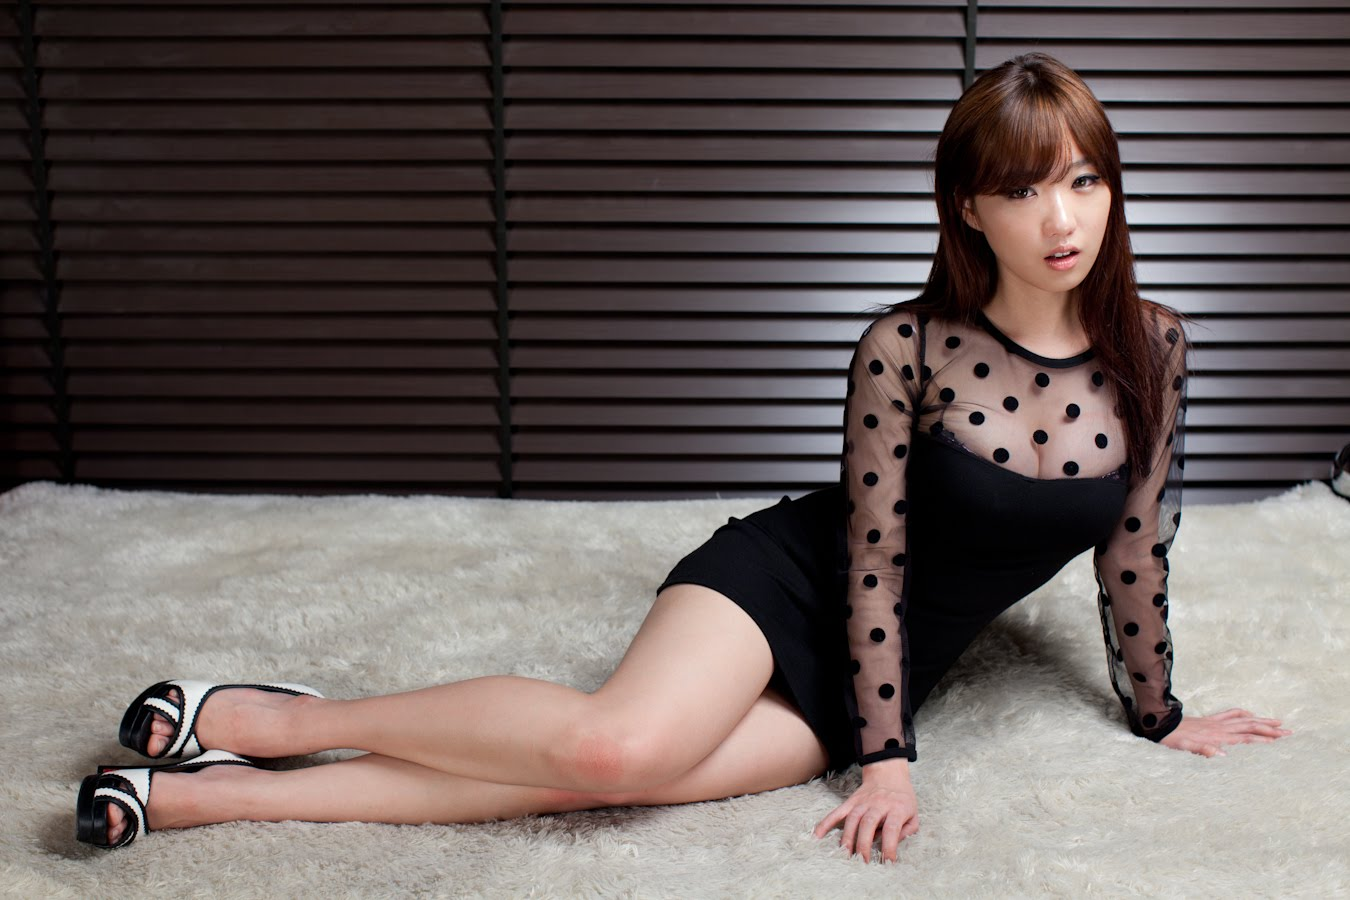 xxx nude girls: Introducing a new girl: So Yeon Yang [Part 2]